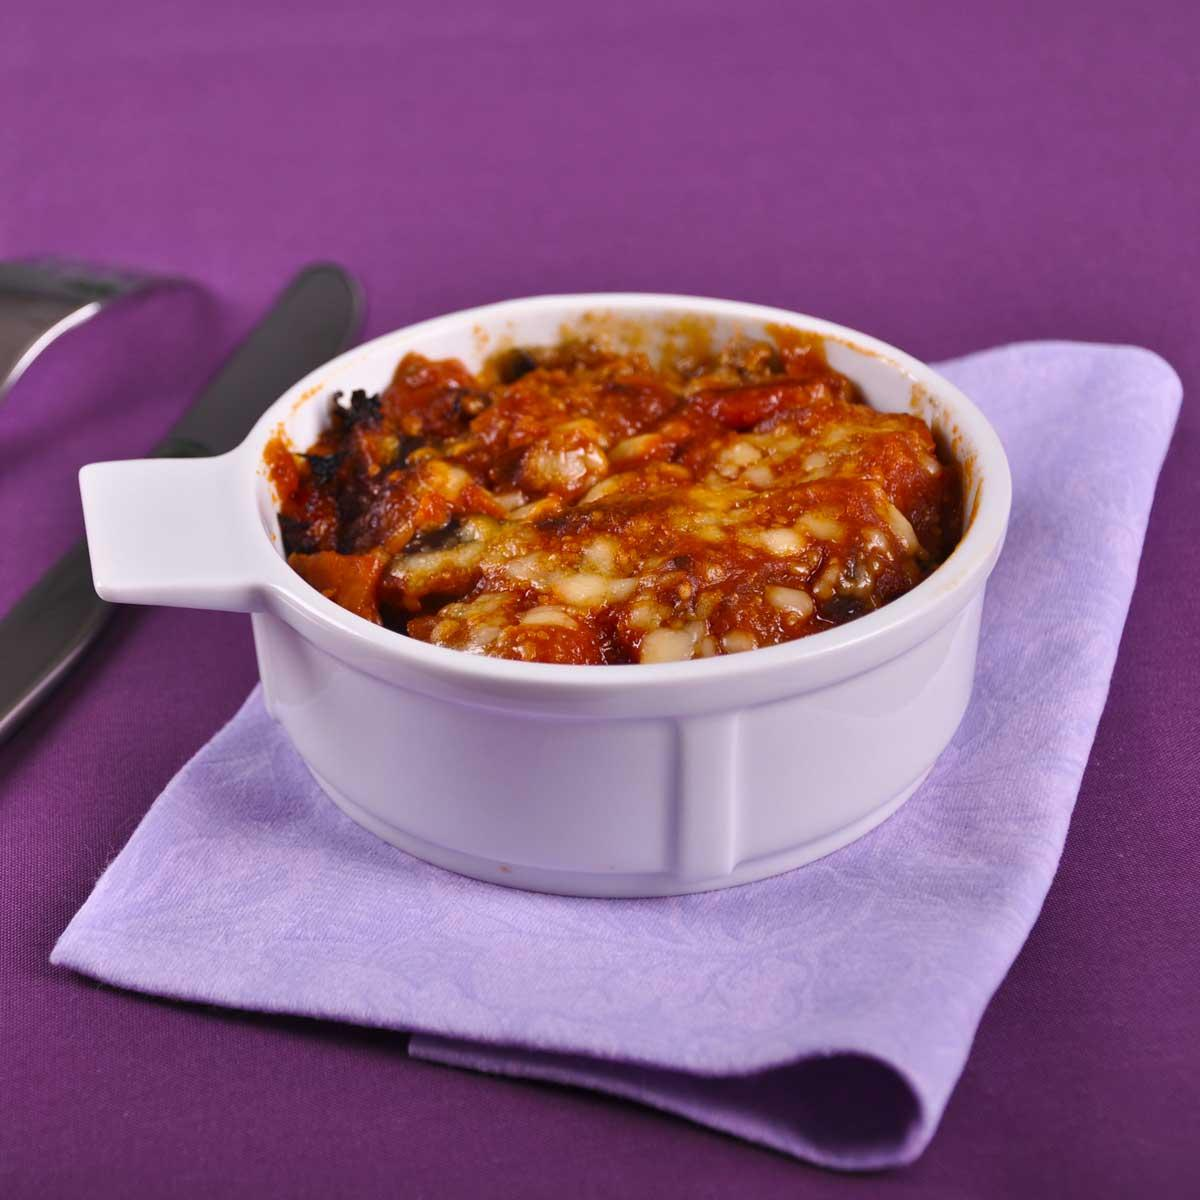 Moussaka all g e une recette week end cuisine le for Specialite normande cuisine